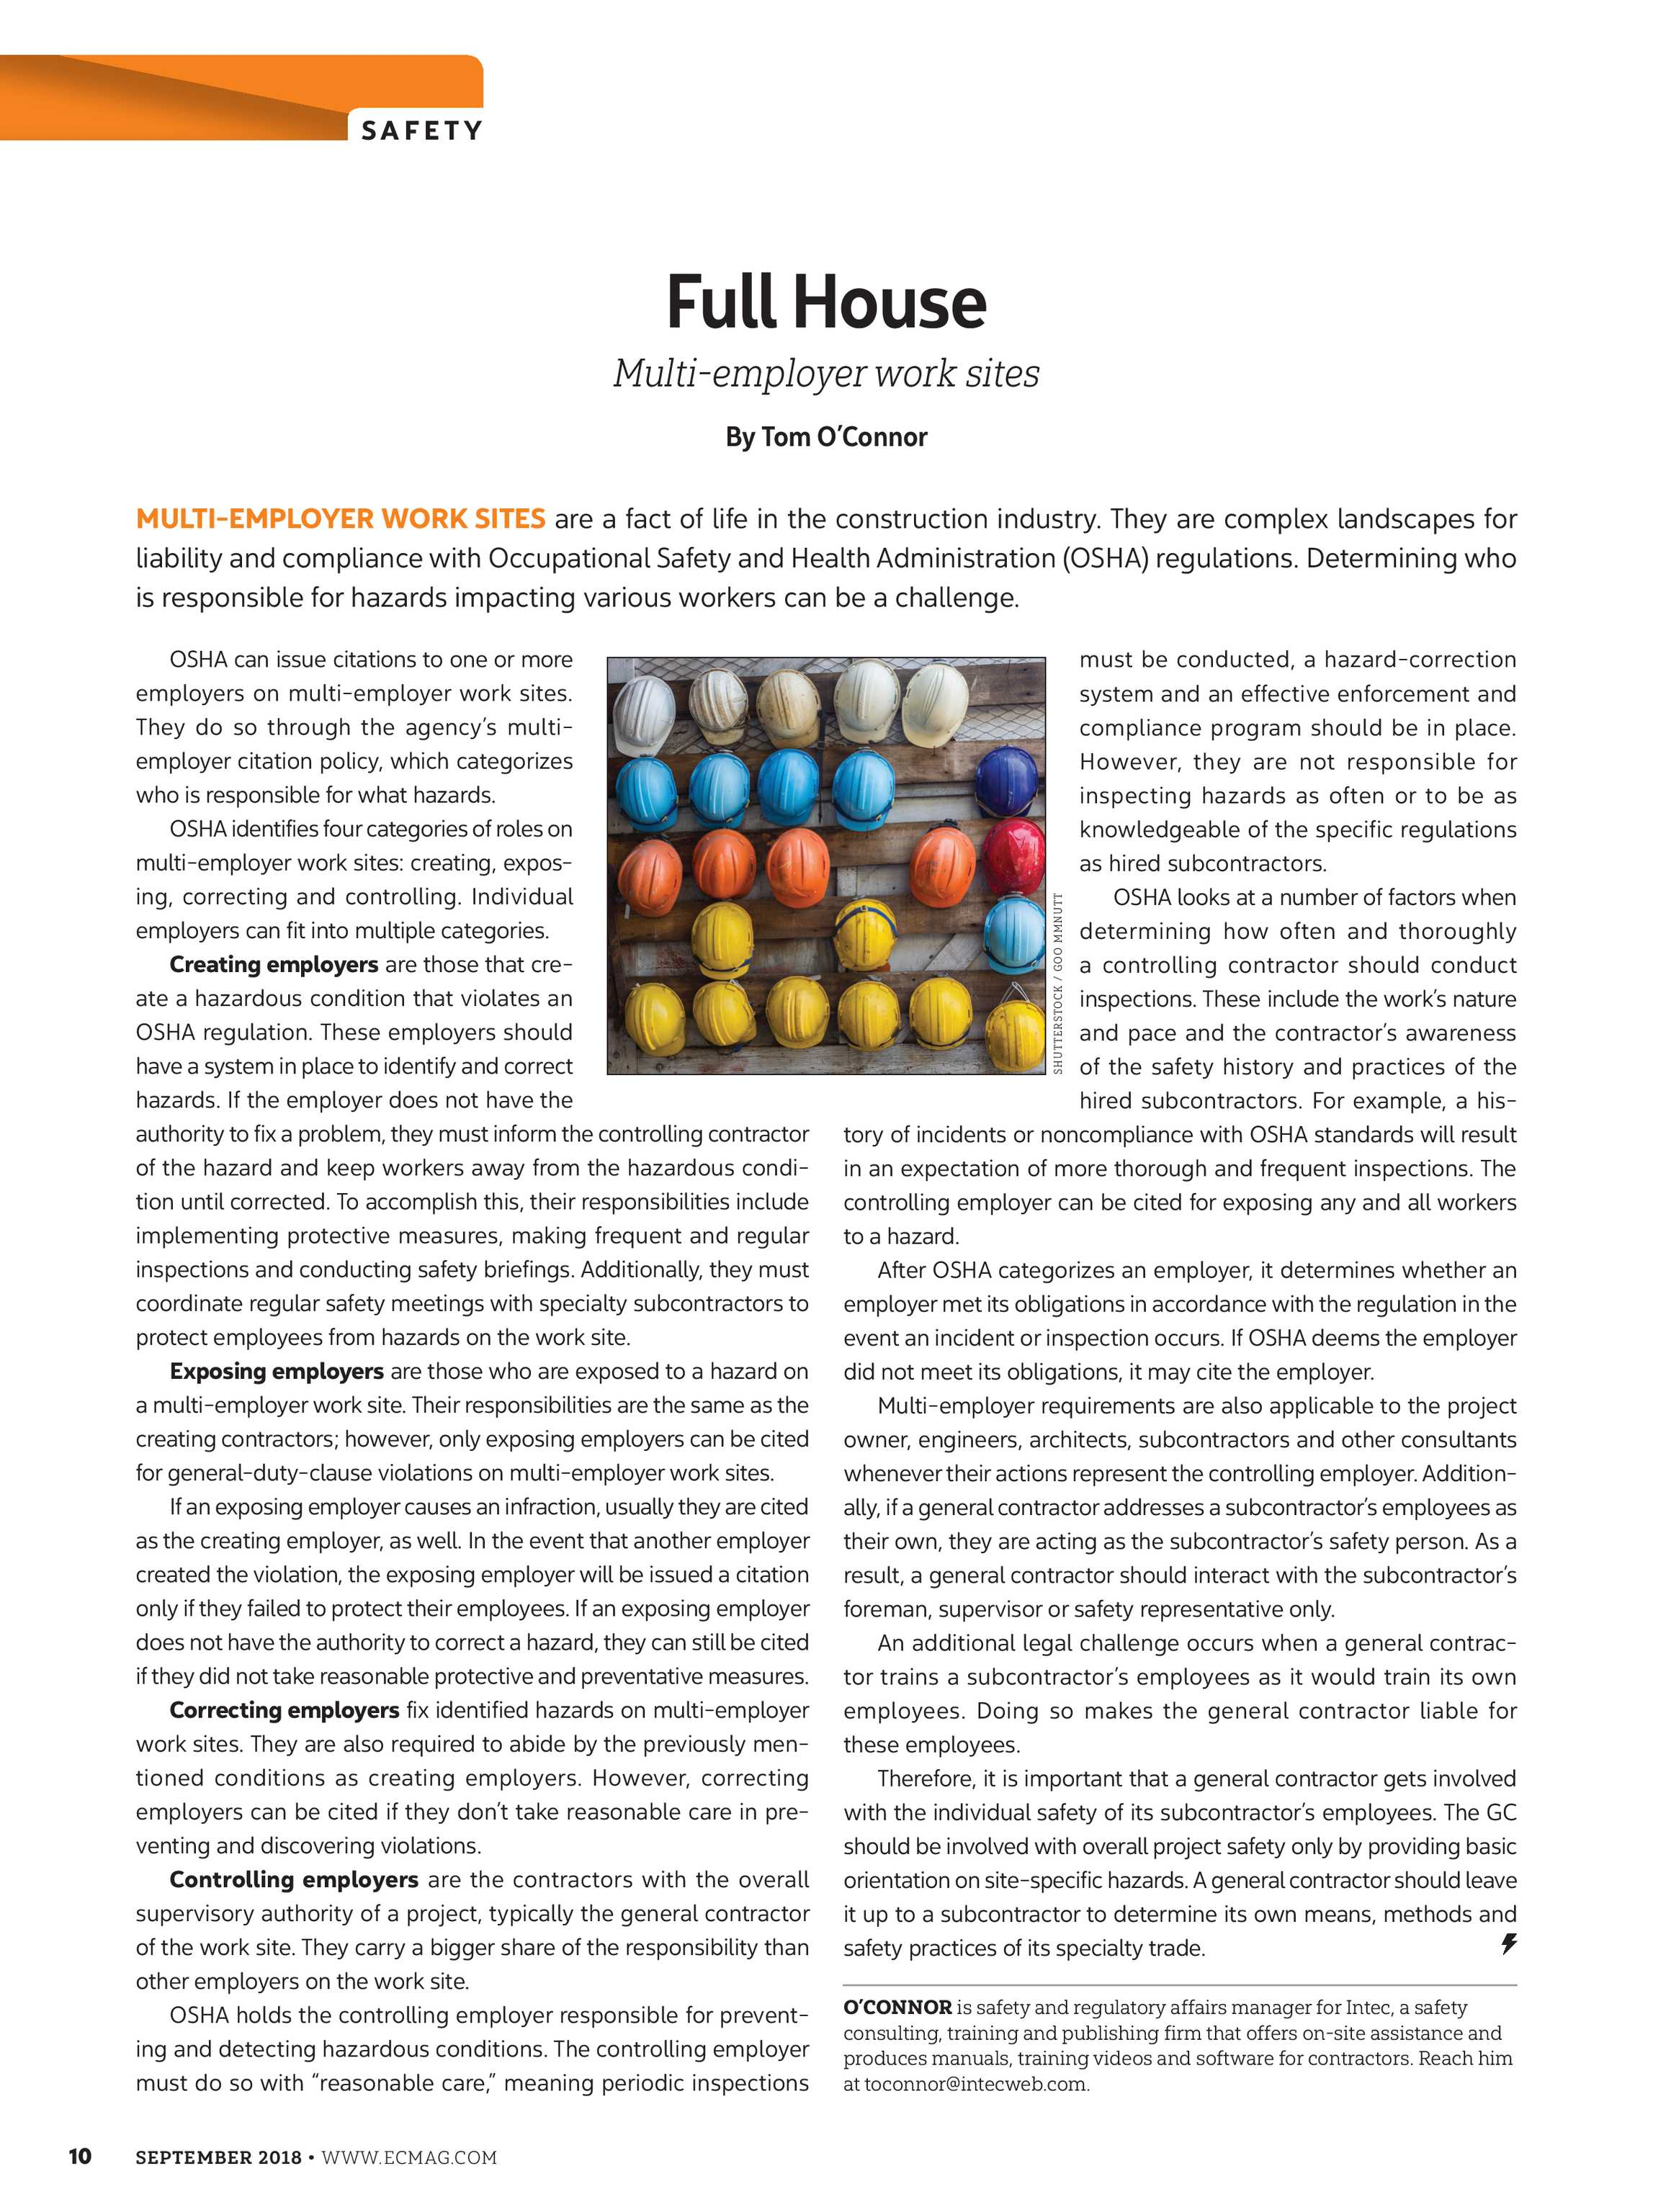 Electrical Contractor - September 2018 - page 10